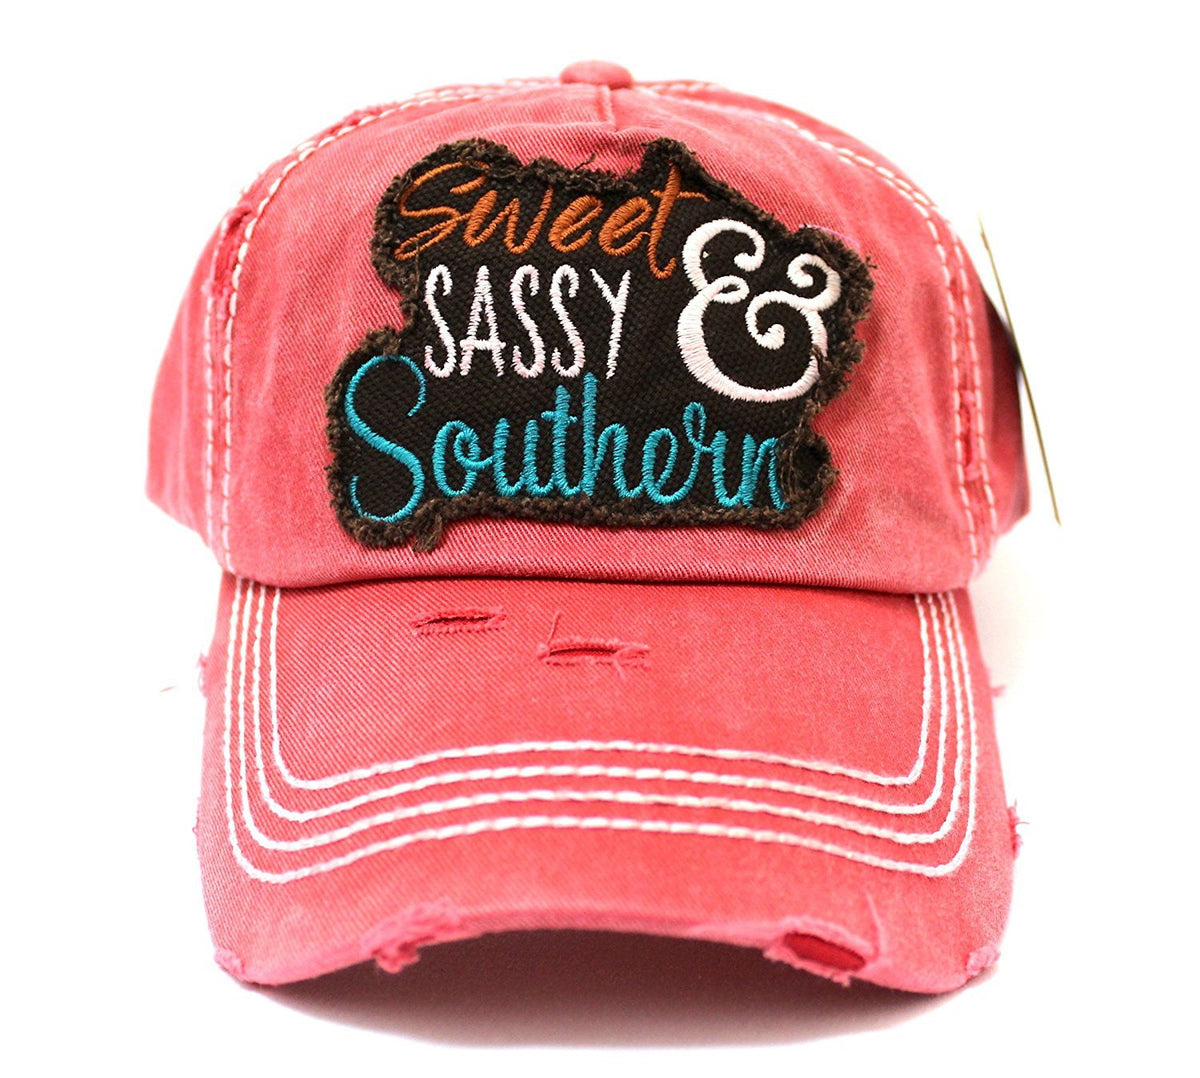 """Sweet SASSY & Southern"" Patch Embroidery Front & Back Hat - Caps 'N Vintage"